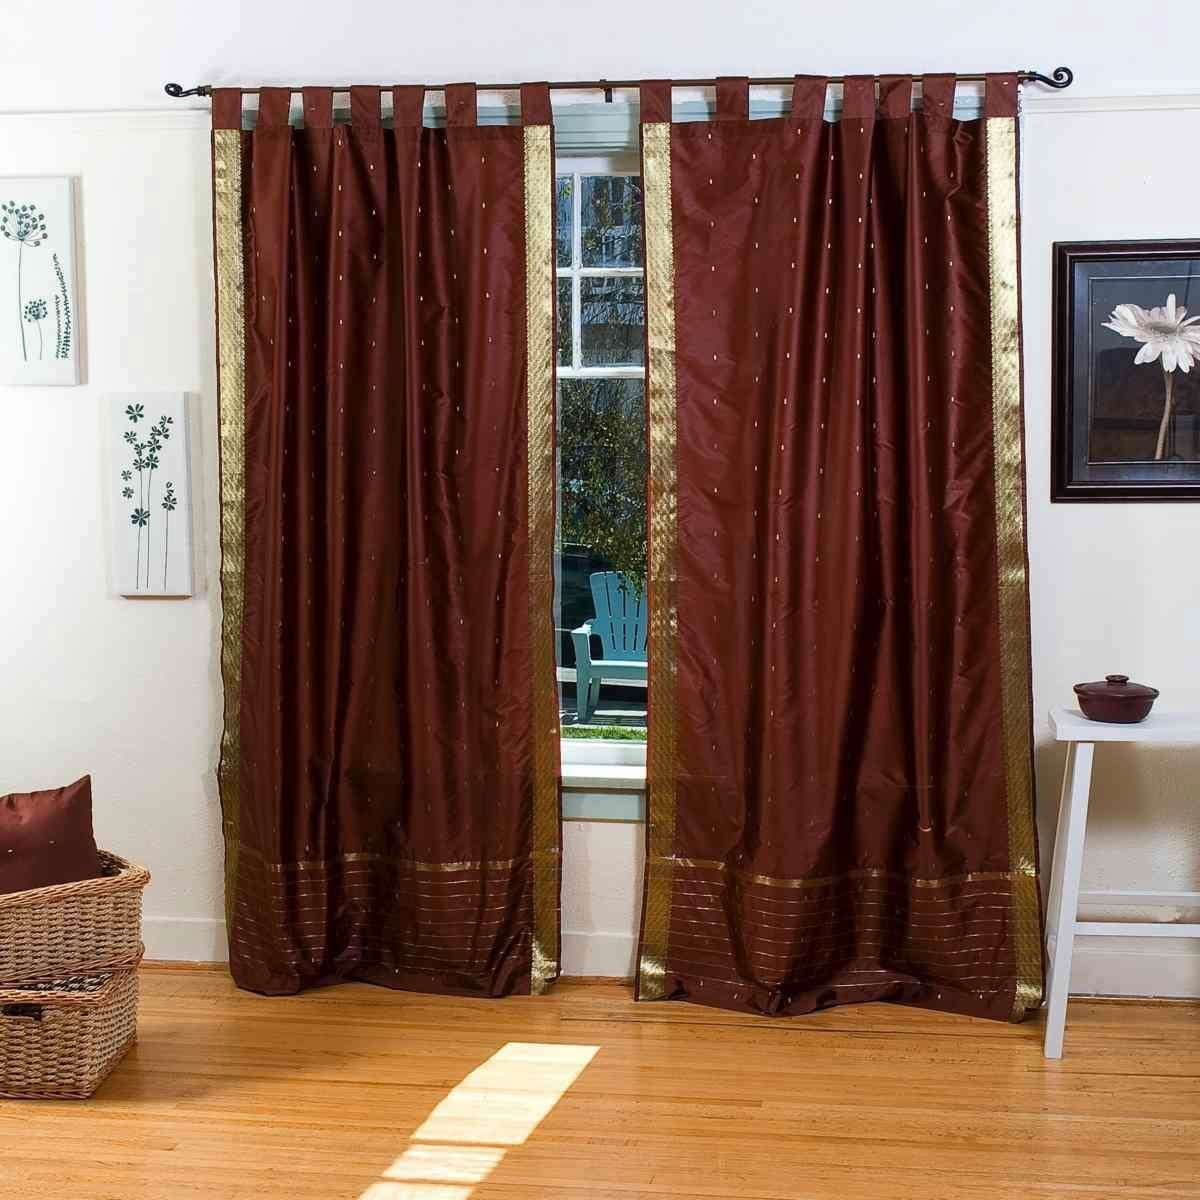 Indian Selections Lined-Brown Tab Top Sheer Sari Curtain Drape Panel – 80W x 120L – Piece